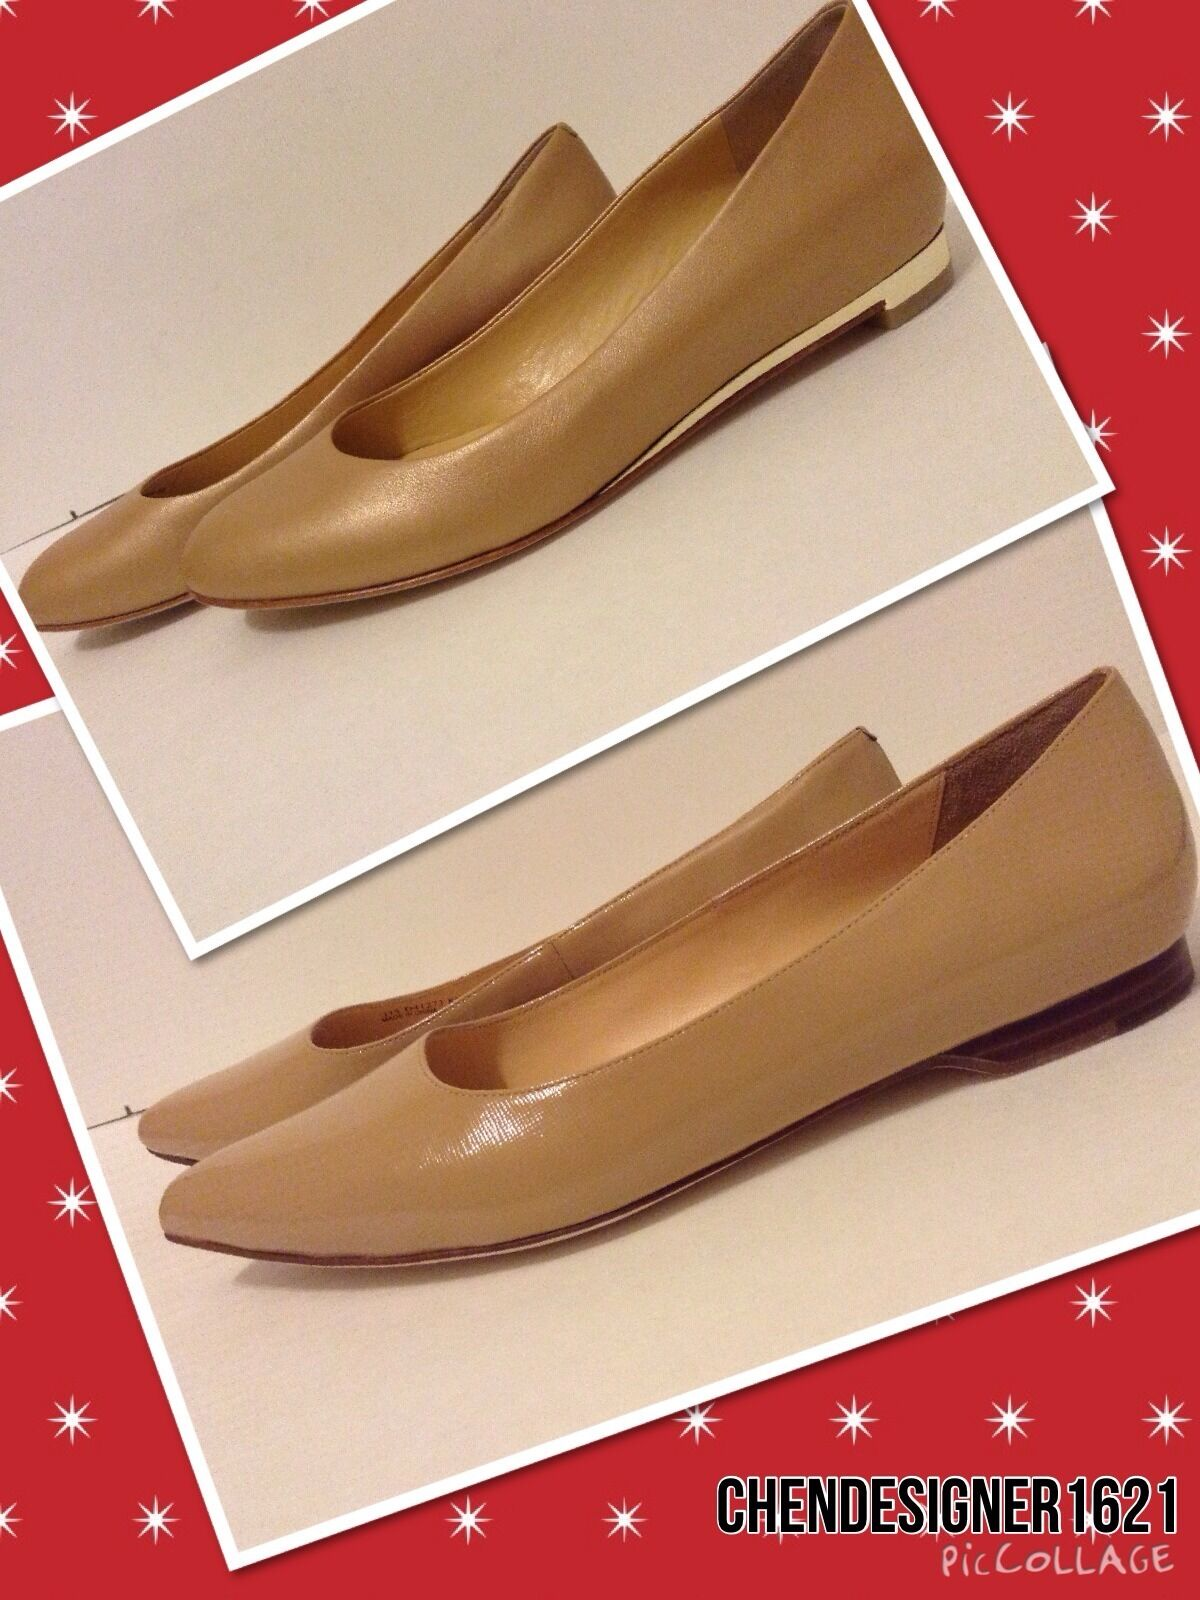 Cole Haan size 6, 8.5 US Magnolia or Astoria Skimmer nude Leather Flat shoes